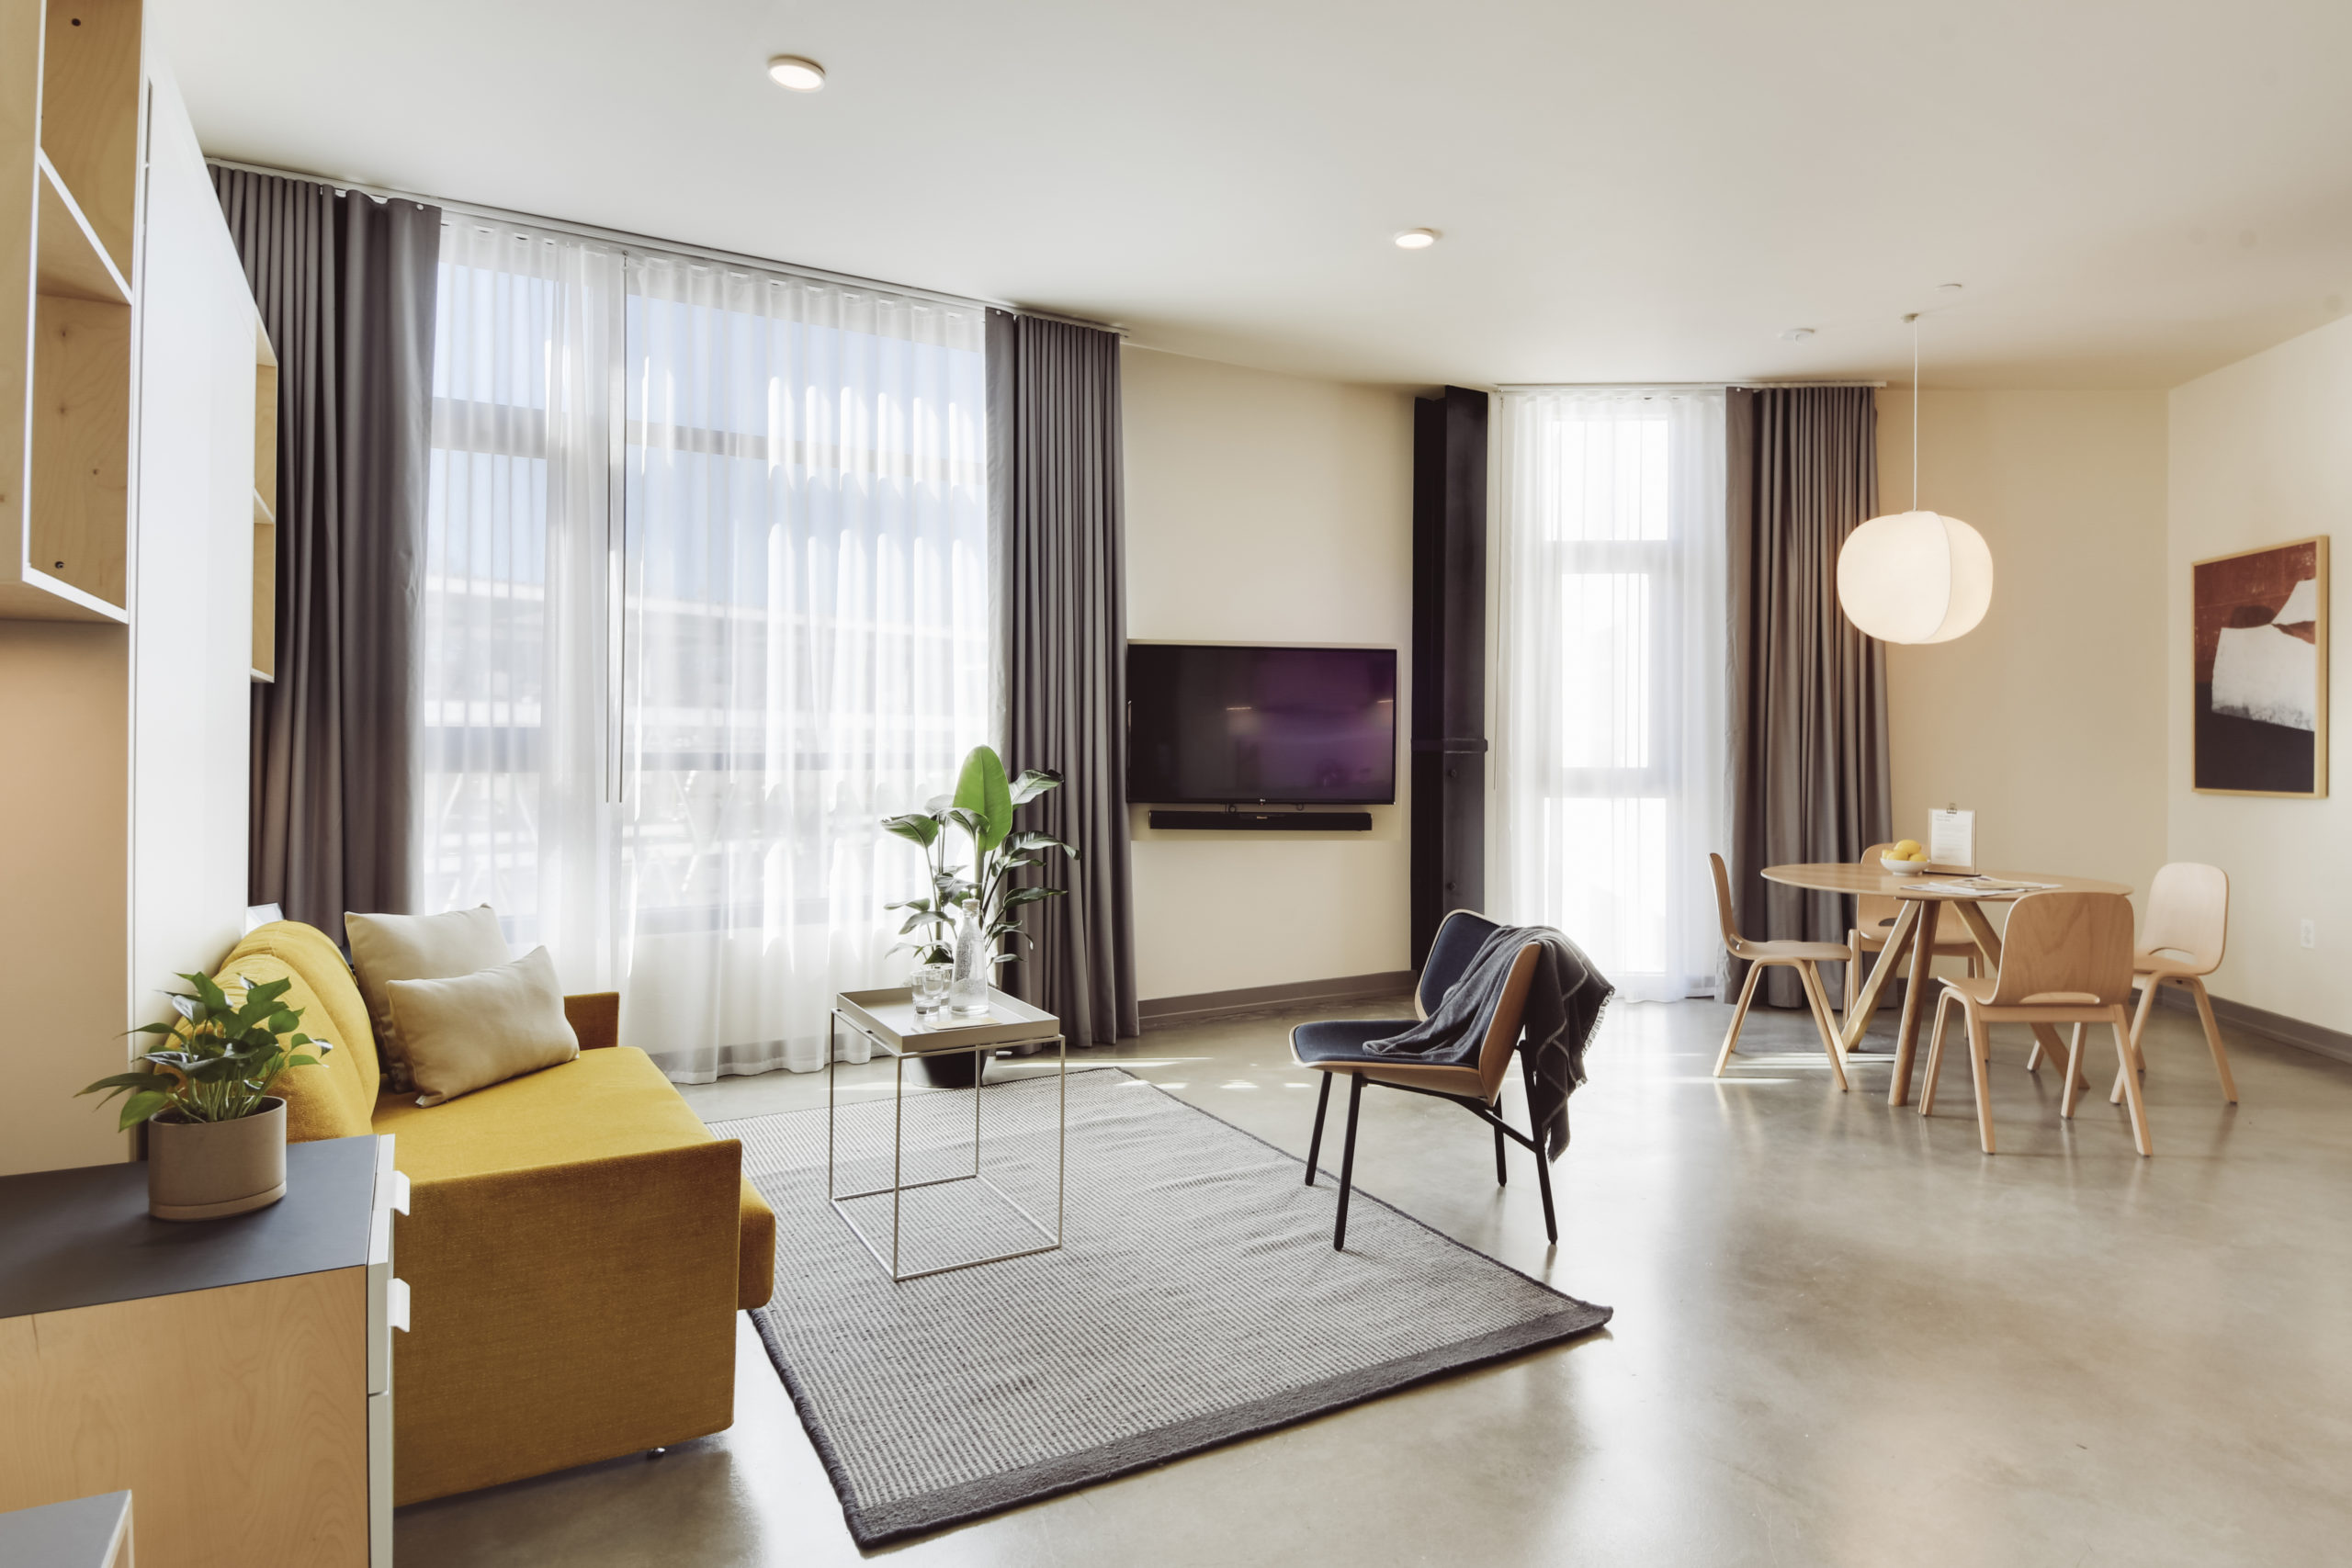 Flexible Interiors Define Guest Experience at BentoLiving